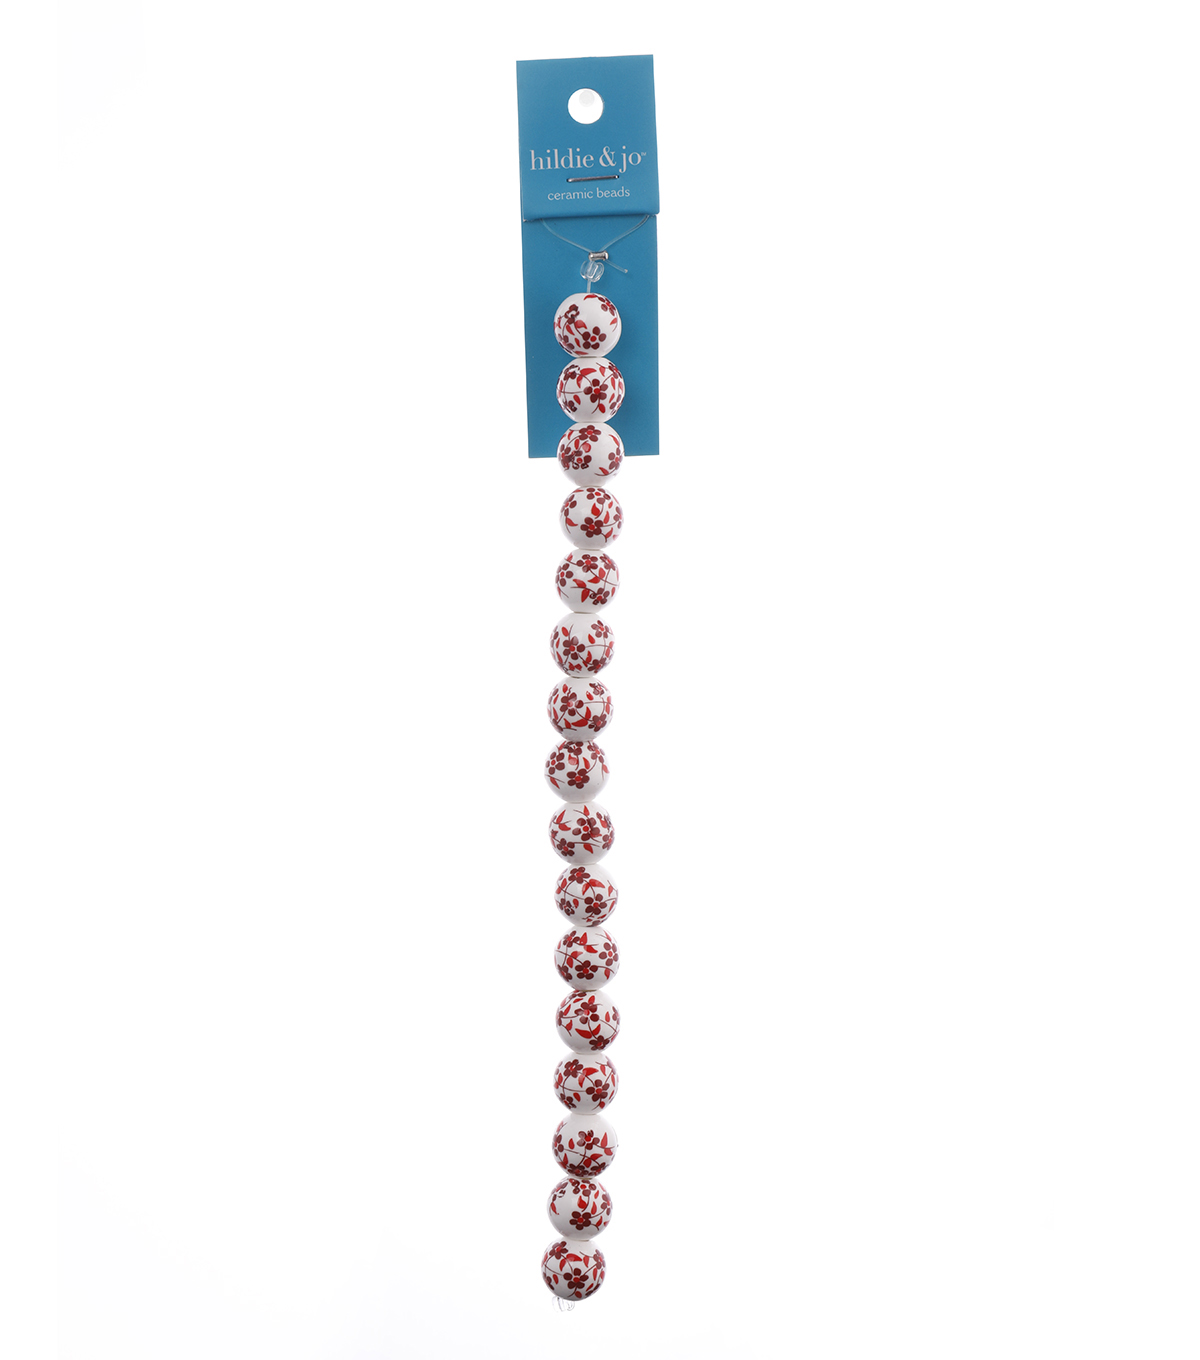 Blue Moon Strung Ceramic Beads,Round,White w/Red,Floral